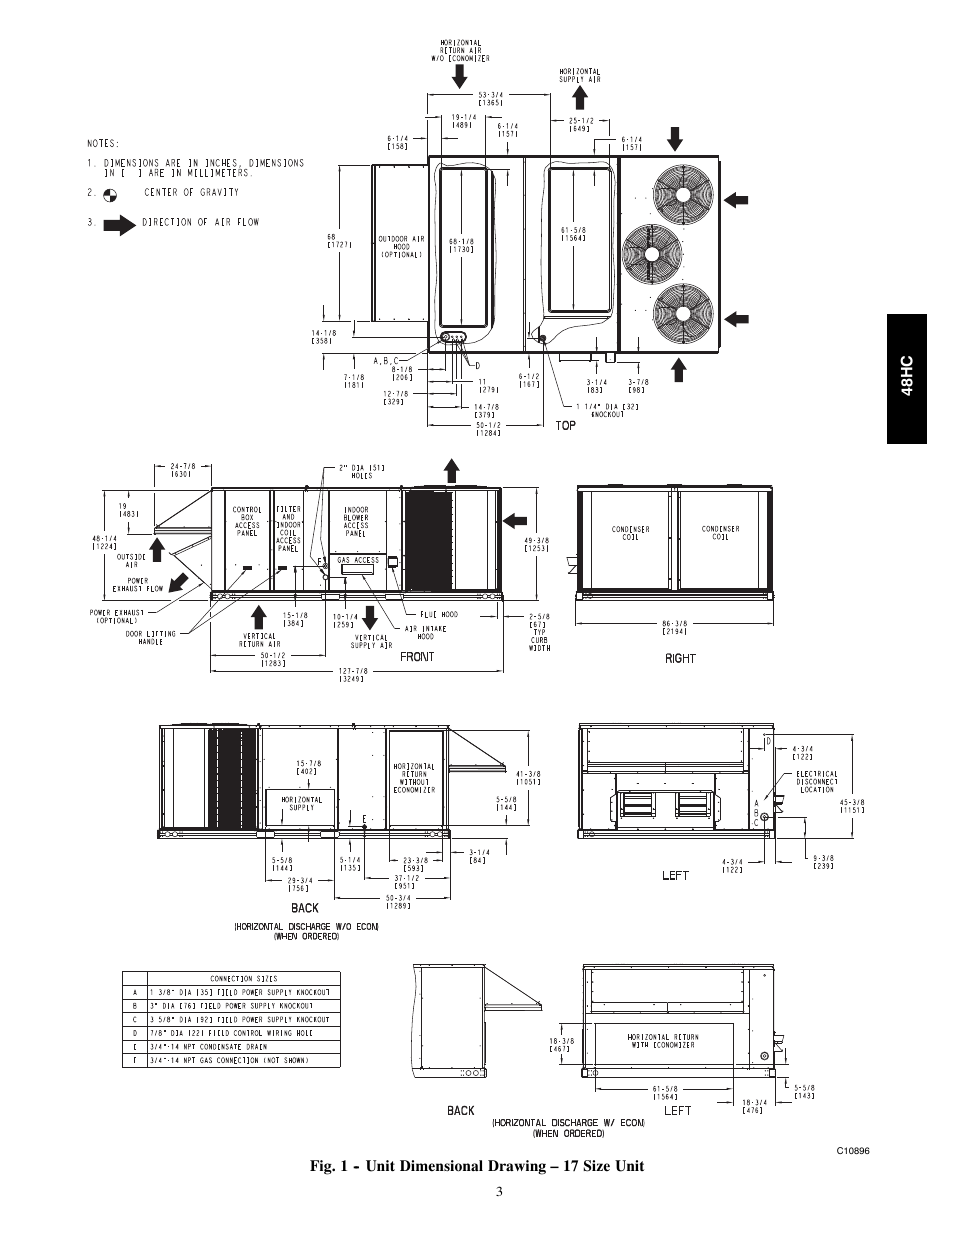 Carrier 48hc Wiring Diagram Free Download Package Unit Images Gallery